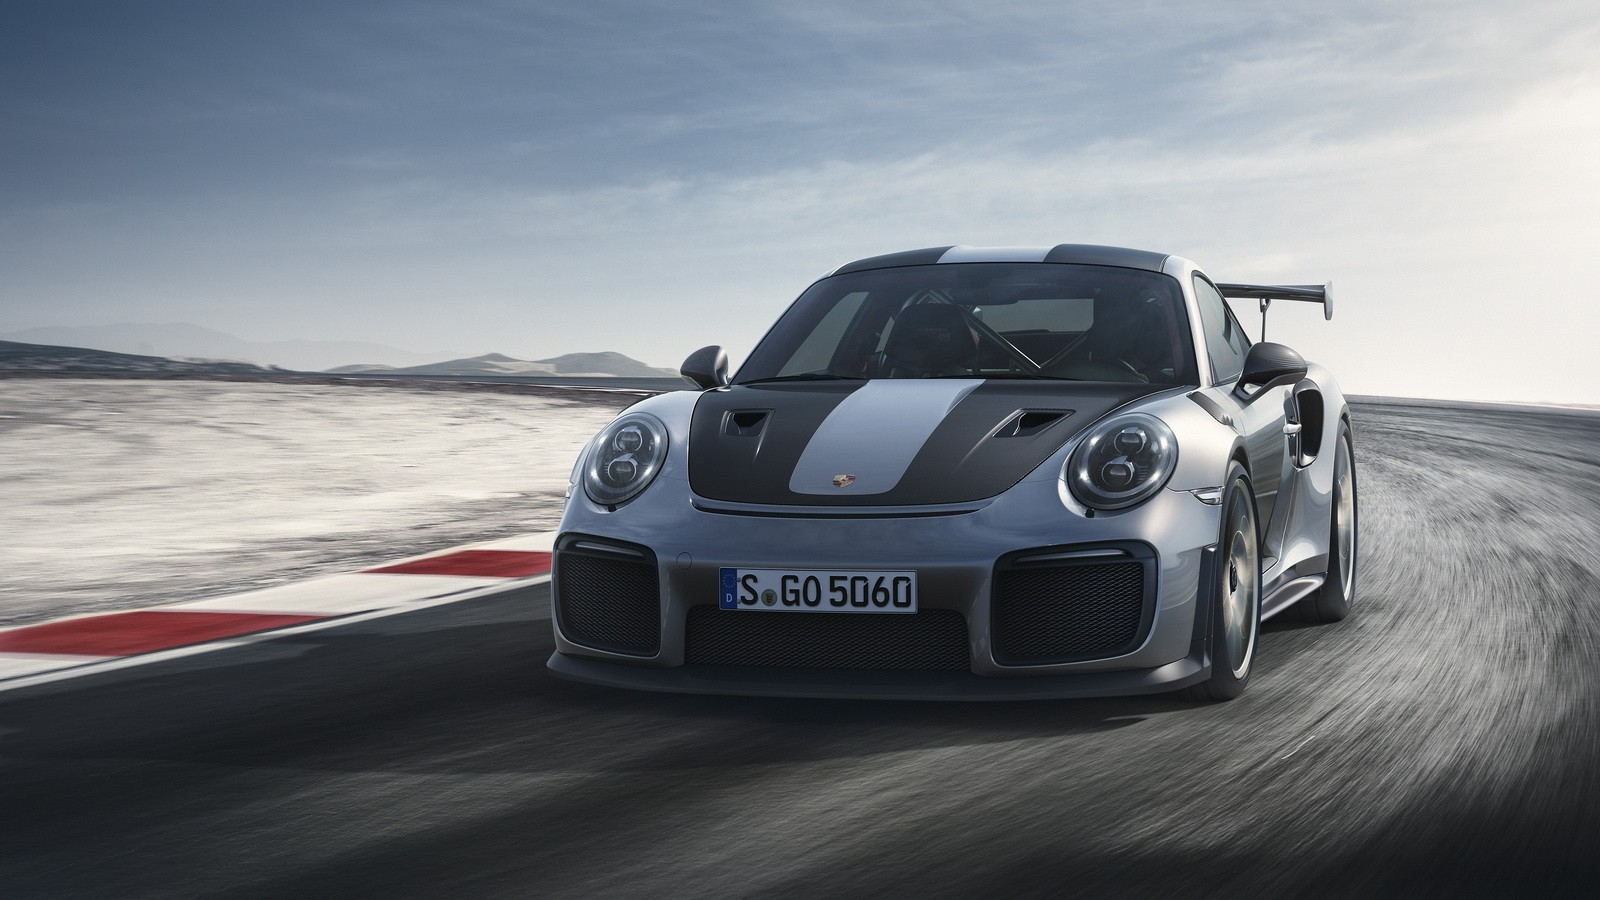 2017 porsche 911 gt2 shows up on nurburgring rumored to be sold out autoev. Black Bedroom Furniture Sets. Home Design Ideas